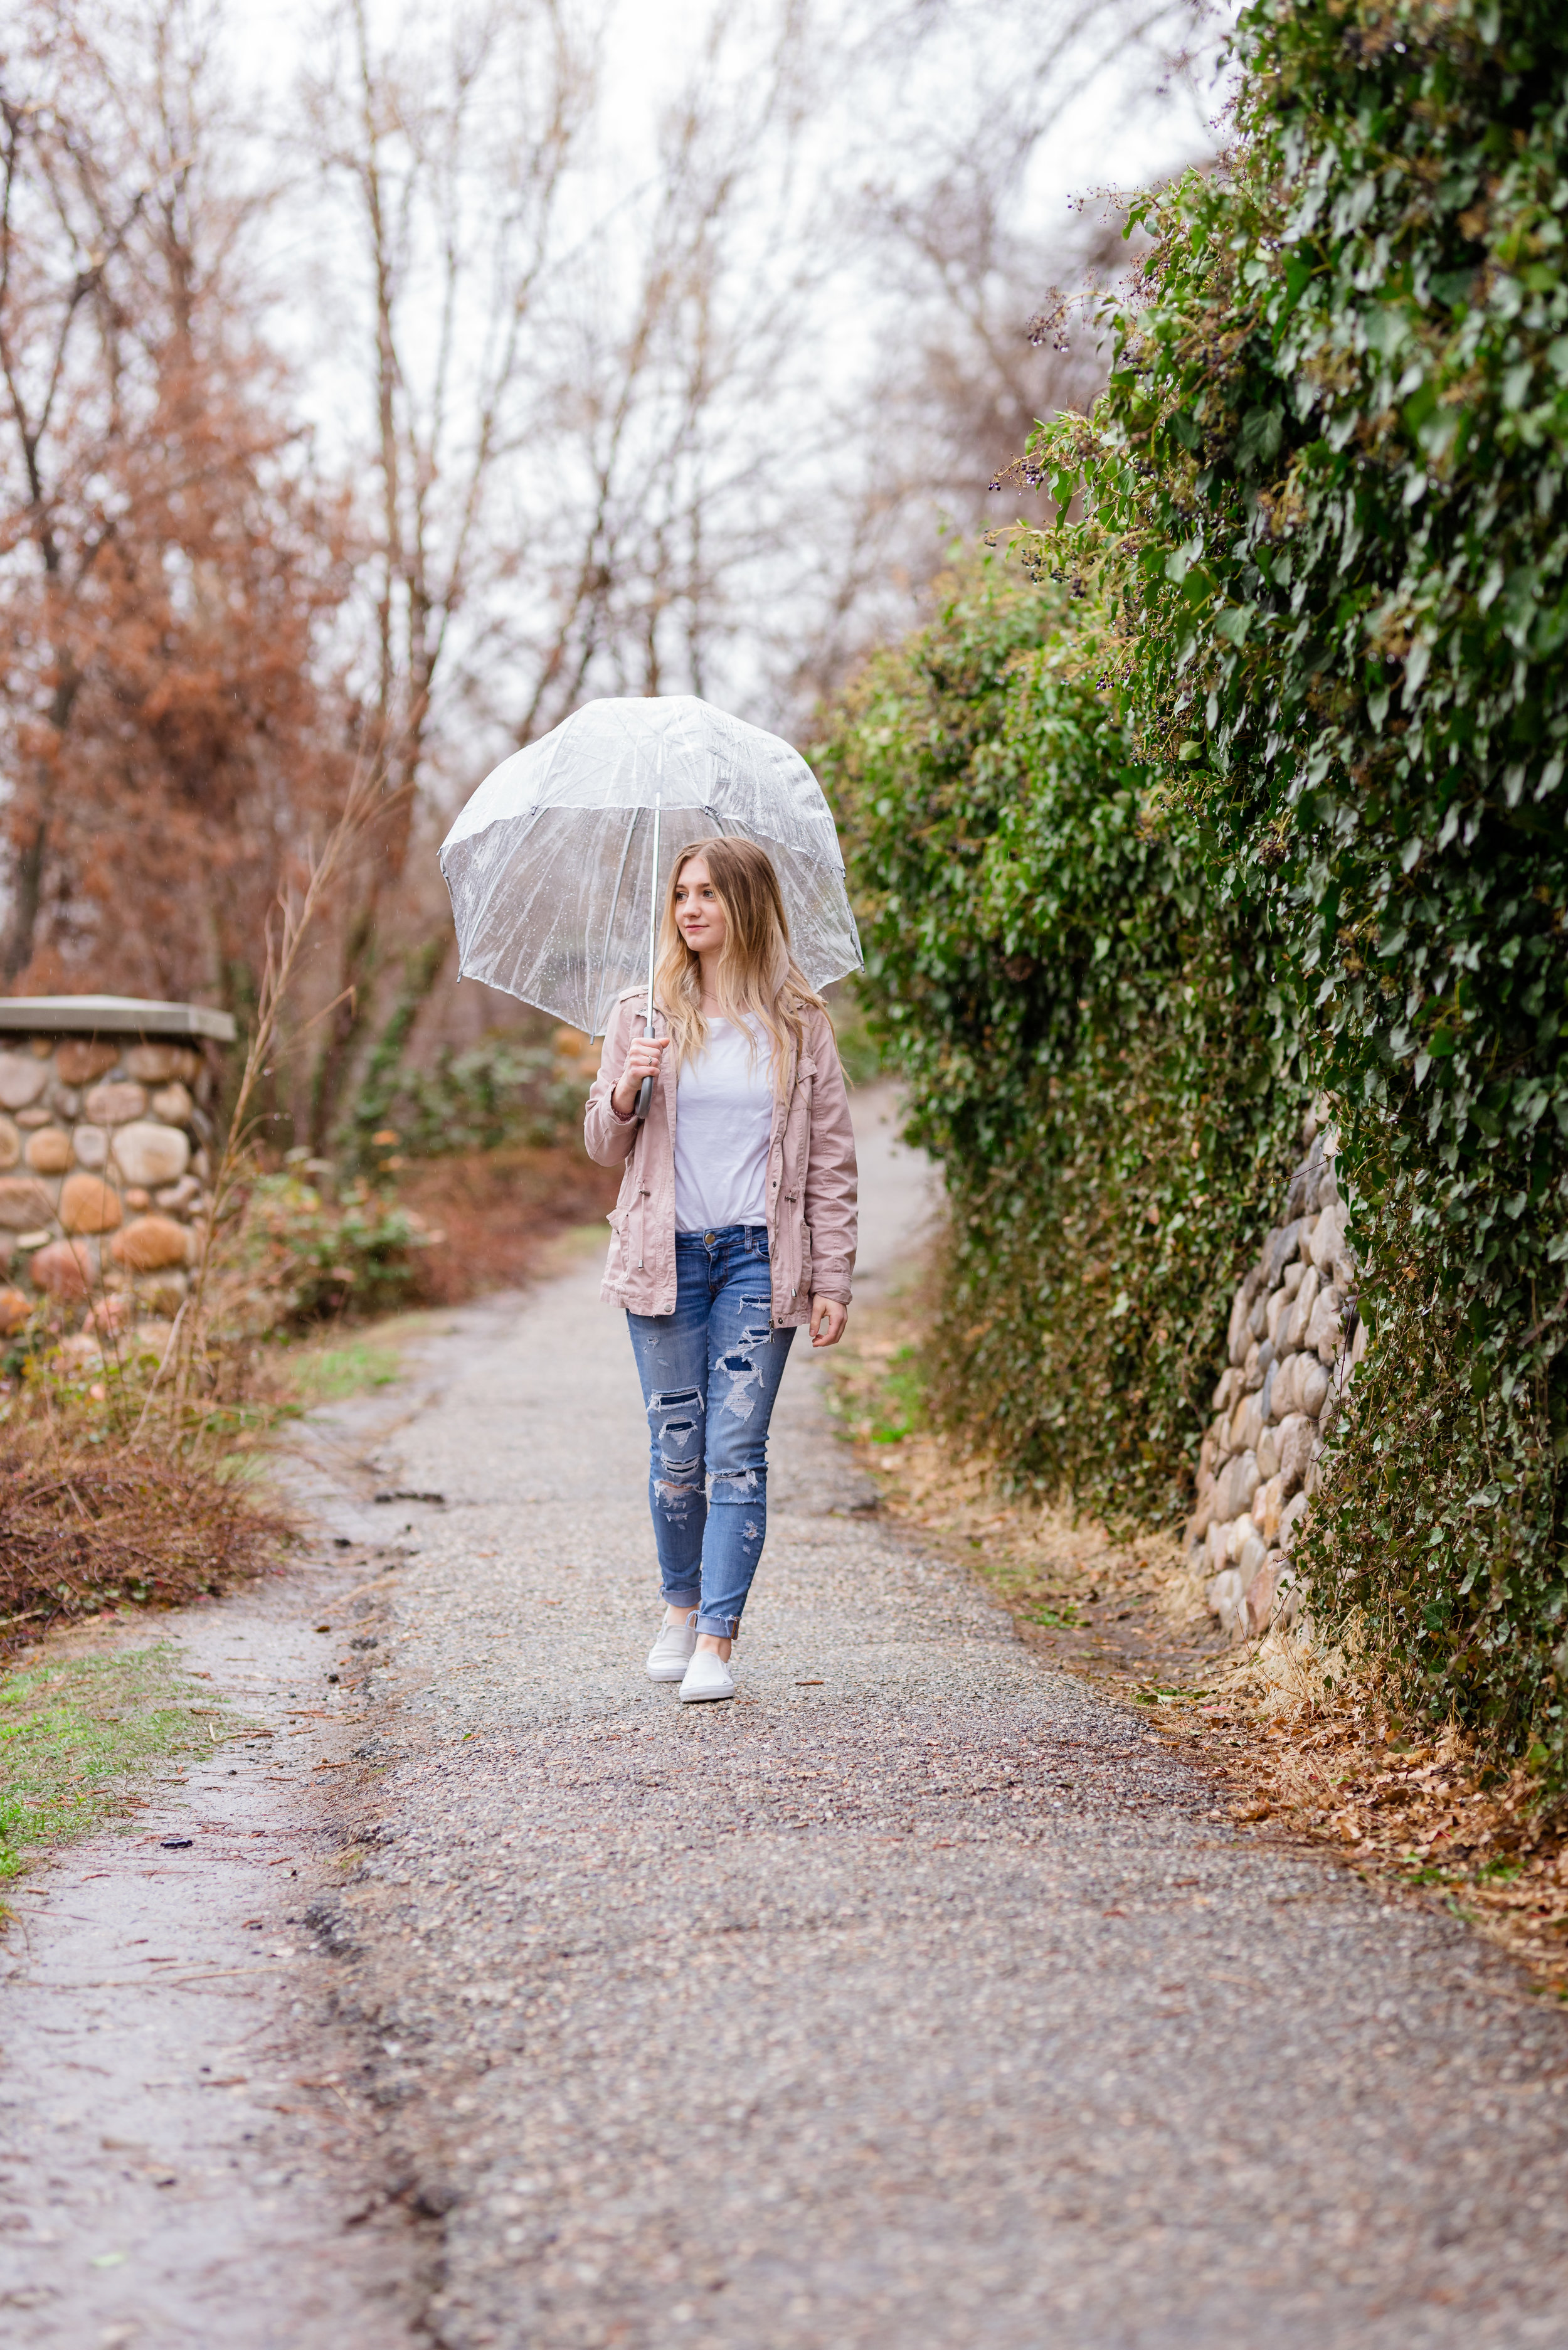 Walking through the rain with a smile and an umbrella. Rainy Day Senior girl pictures in the rain at Memory Grove Park in Downtown Salt Lake City.